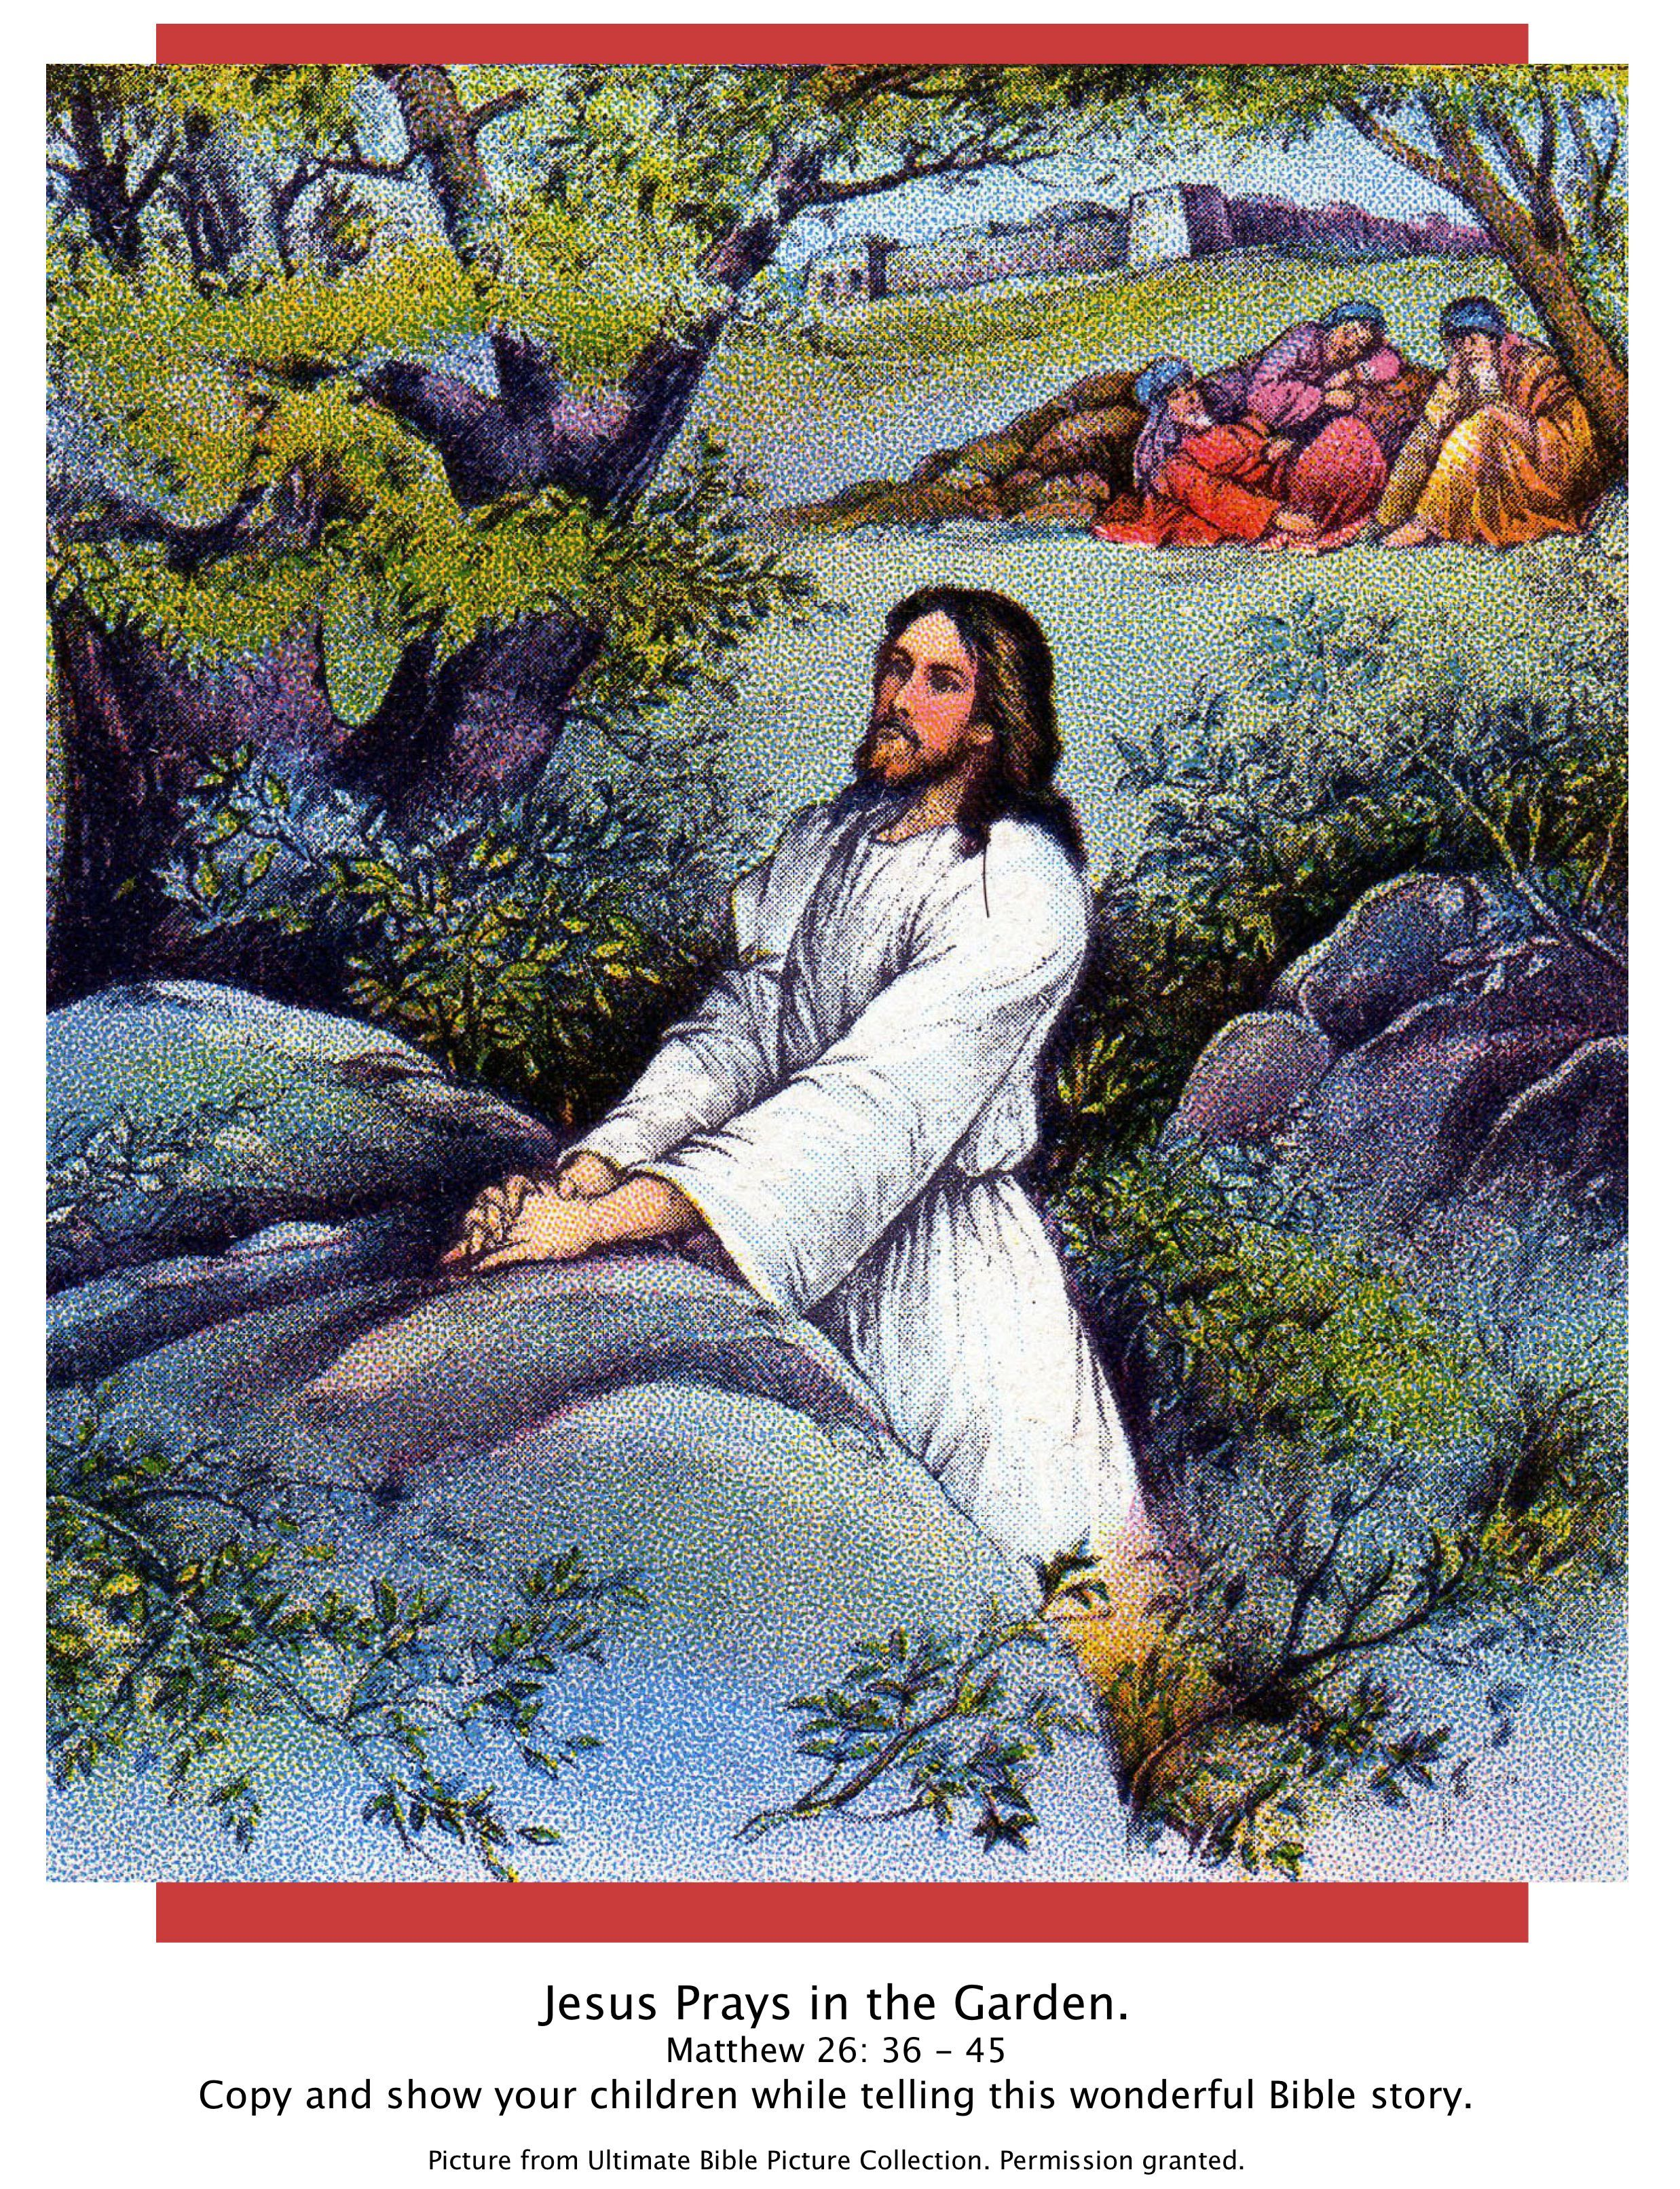 Bible story picture of garden of gethsemane lk 22 39 44 show your children while telling this Jesus praying in the garden of gethsemane